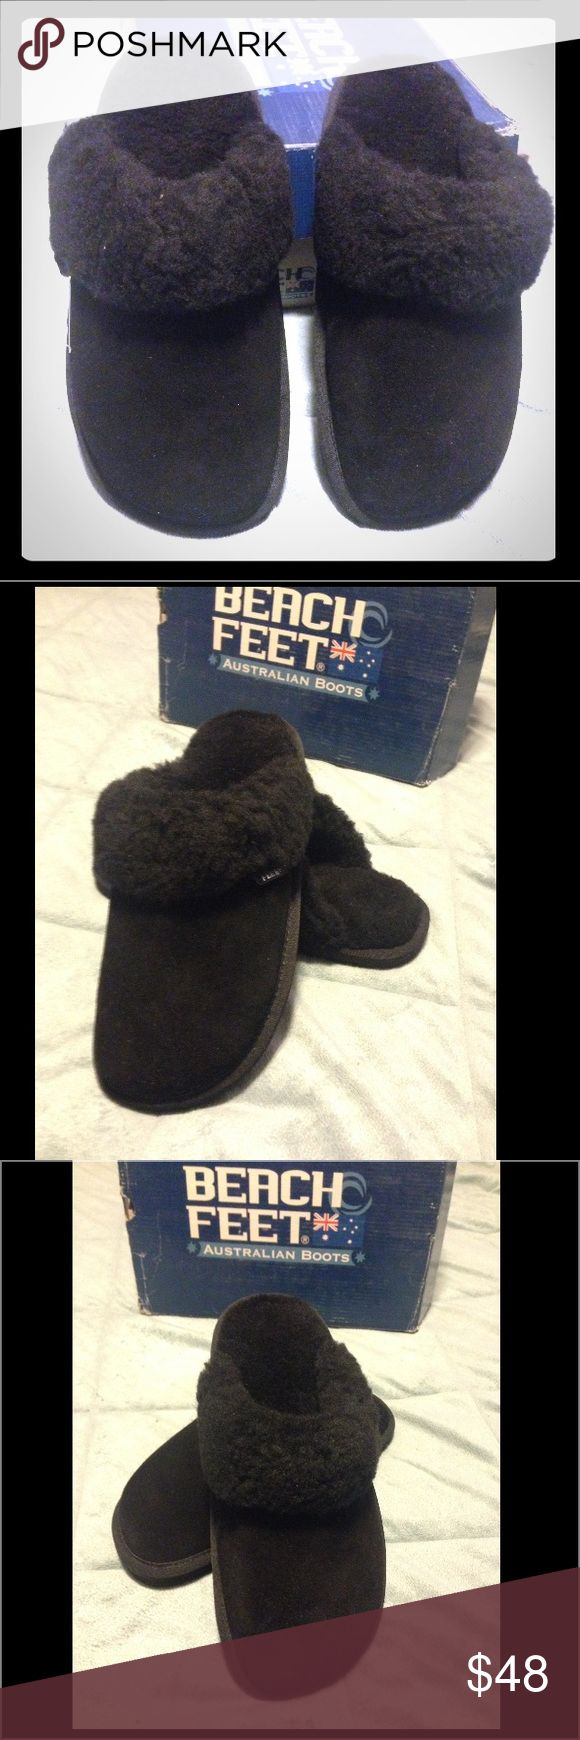 Beach Feet Australian Boots Black Slippers-NICE!-7 Beach Feet Australian Boots Black Super Soft Slippers, Size (7), Brand New In Box Beach Feet Australian Boots Shoes Slippers